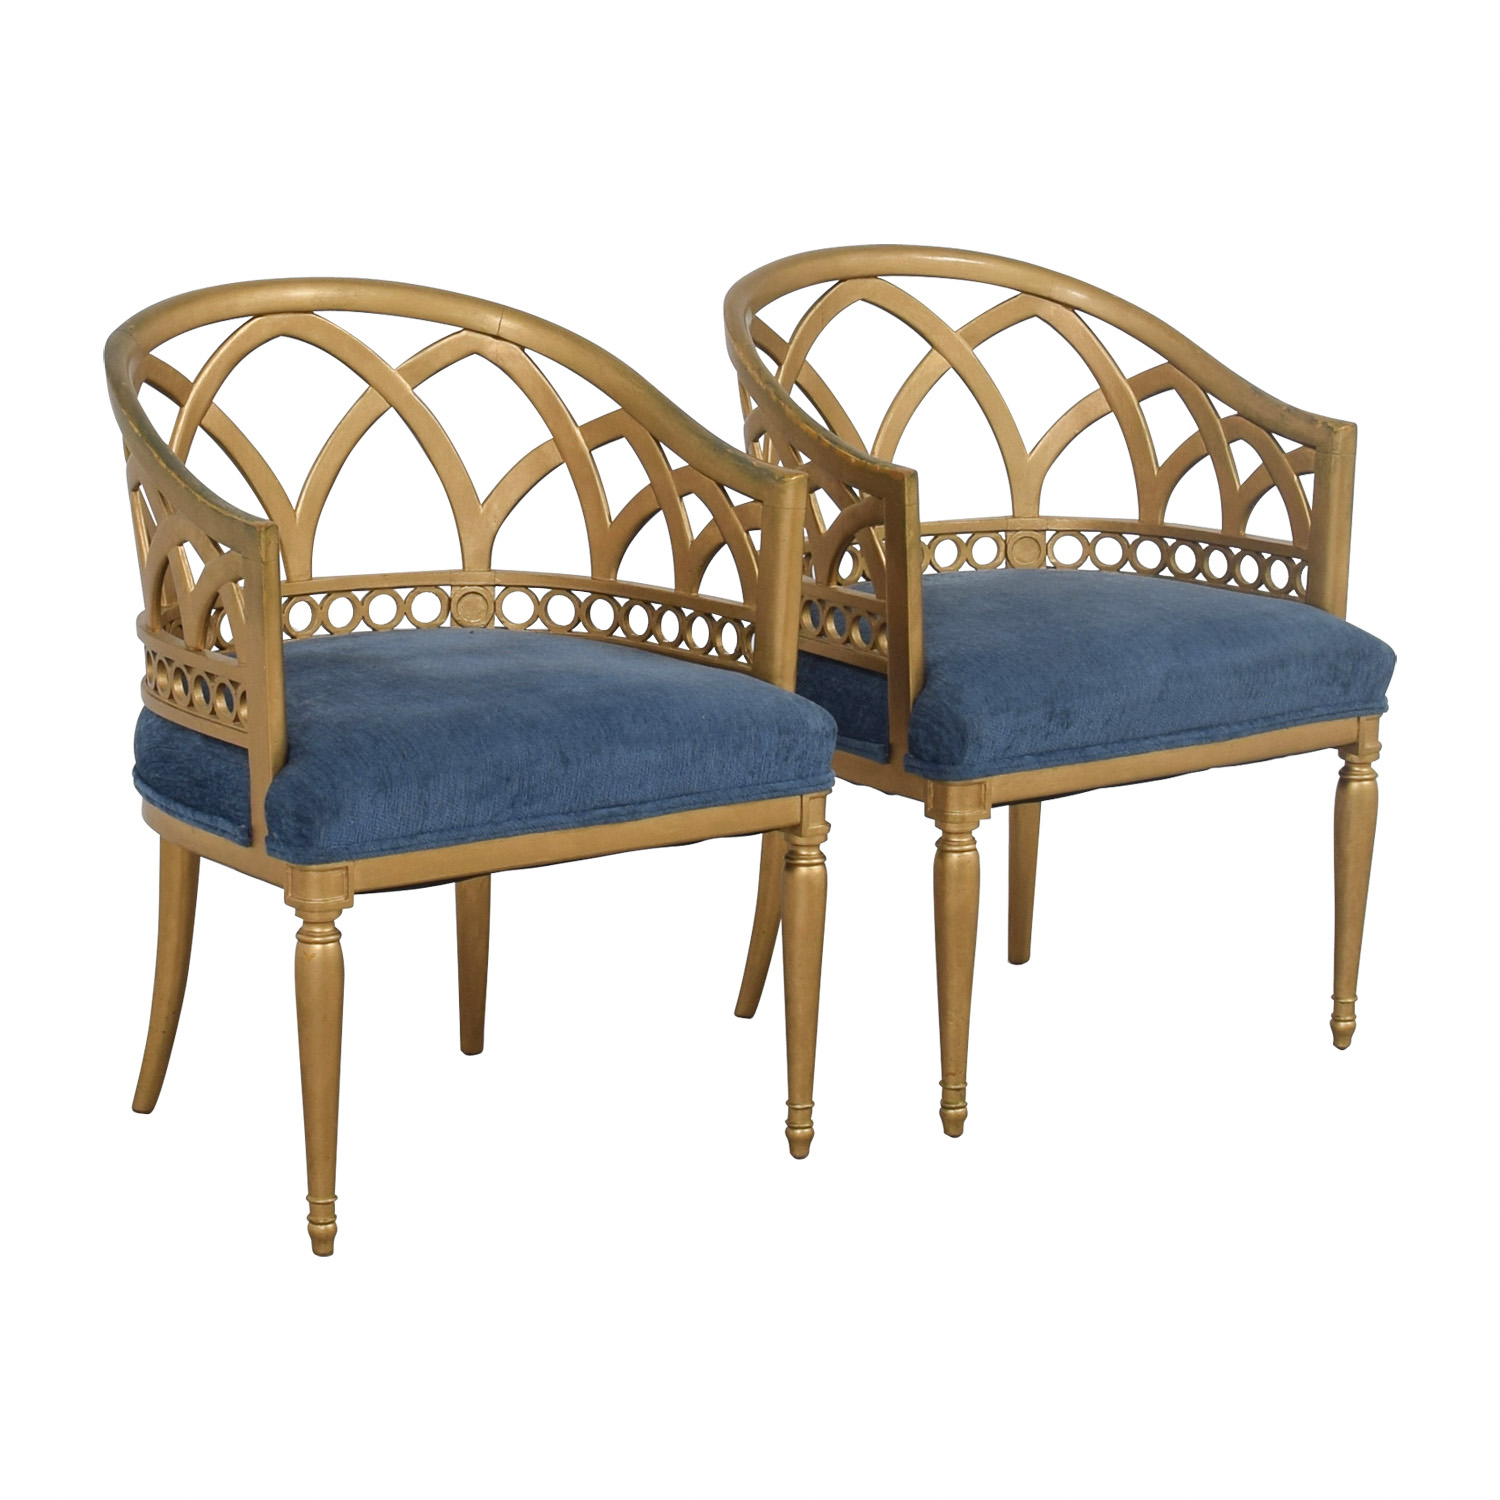 Gold Accent Chairs 64 Off Regency Blue And Gold Accent Chairs Chairs